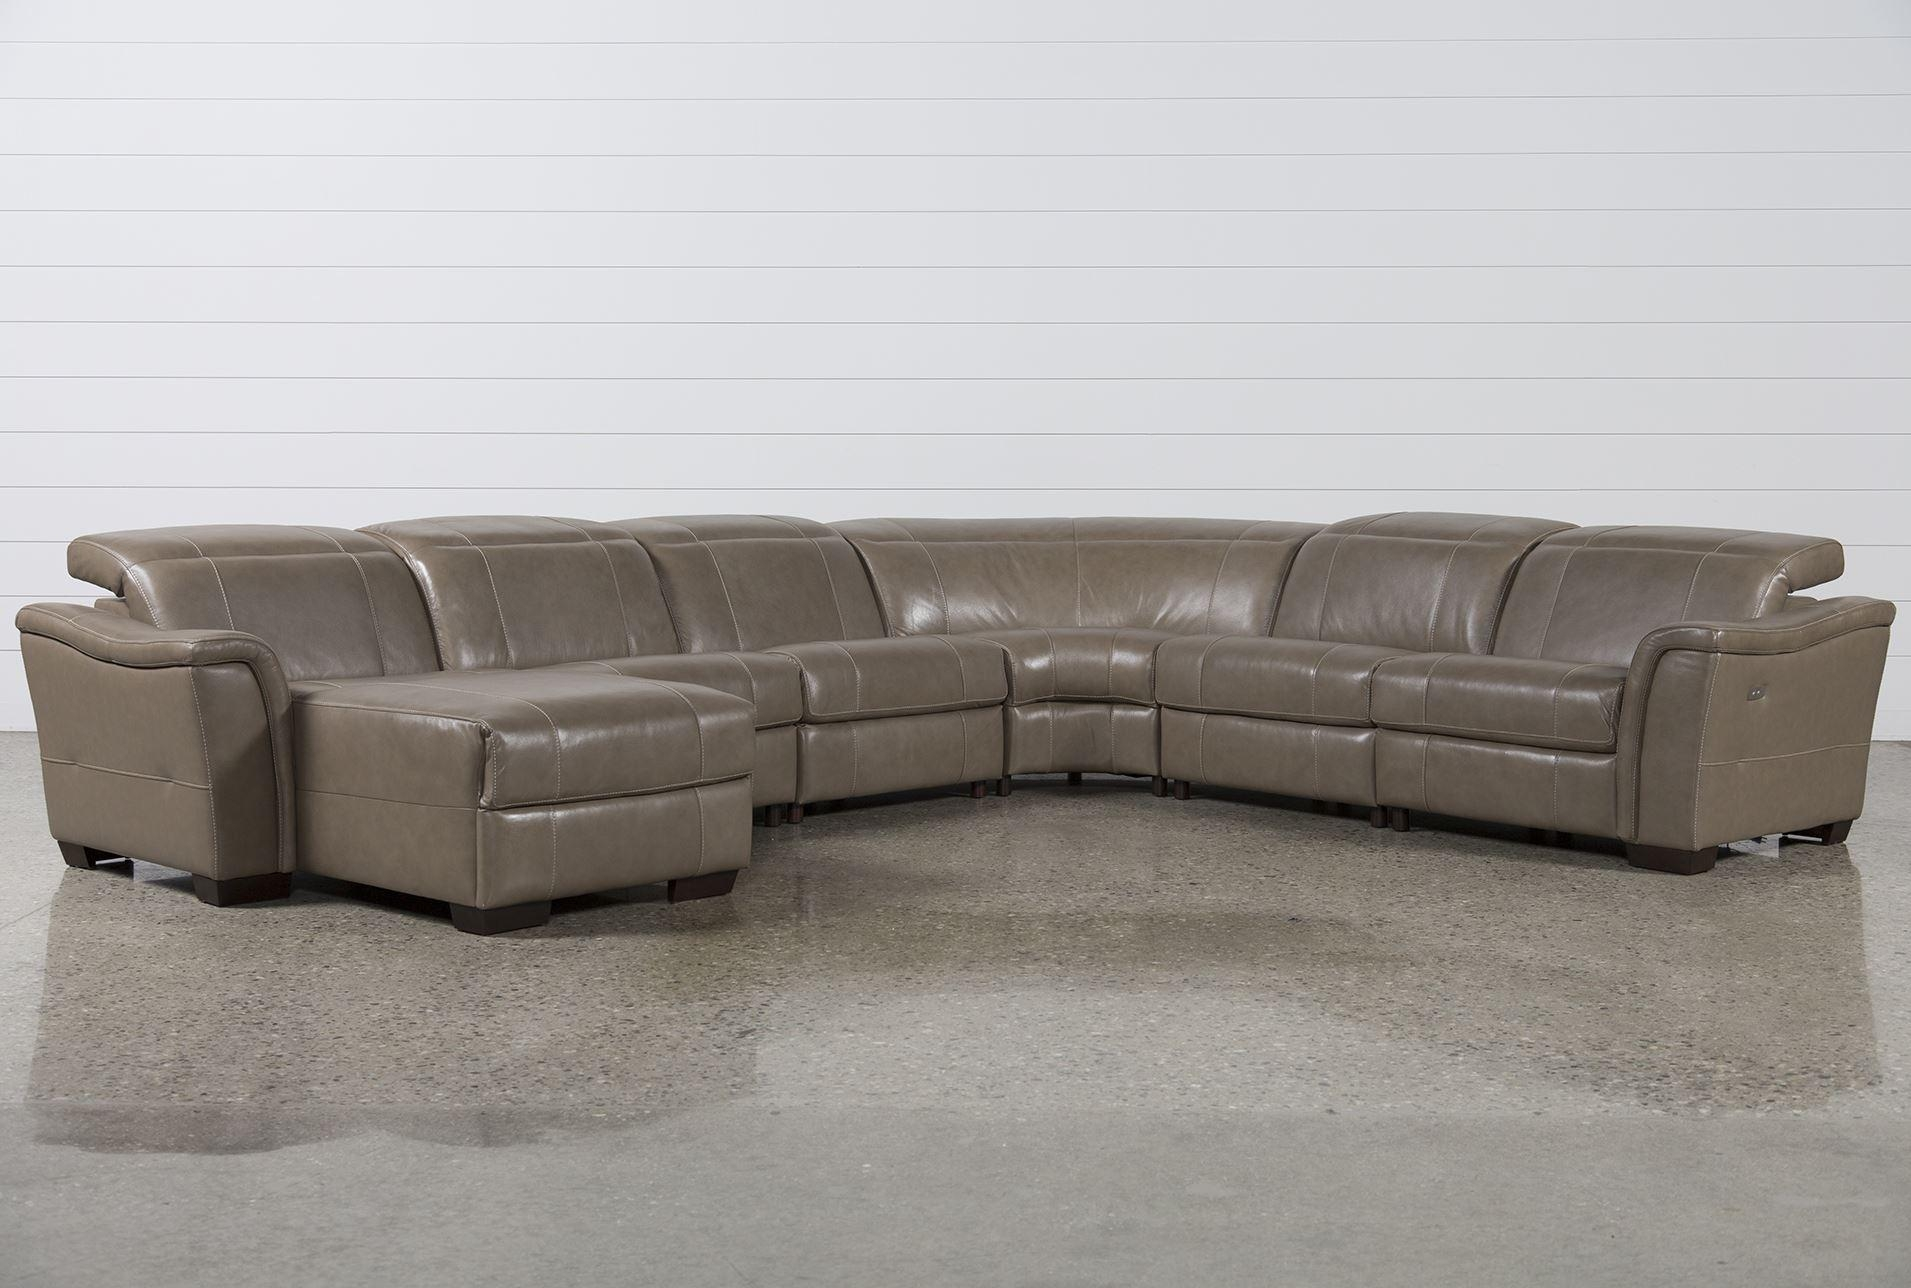 Unique 6 Piece Sectional Sofa 31 In Sofas And Couches Ideas With 6 Within 6 Piece Sectional Sofas Couches (View 11 of 20)